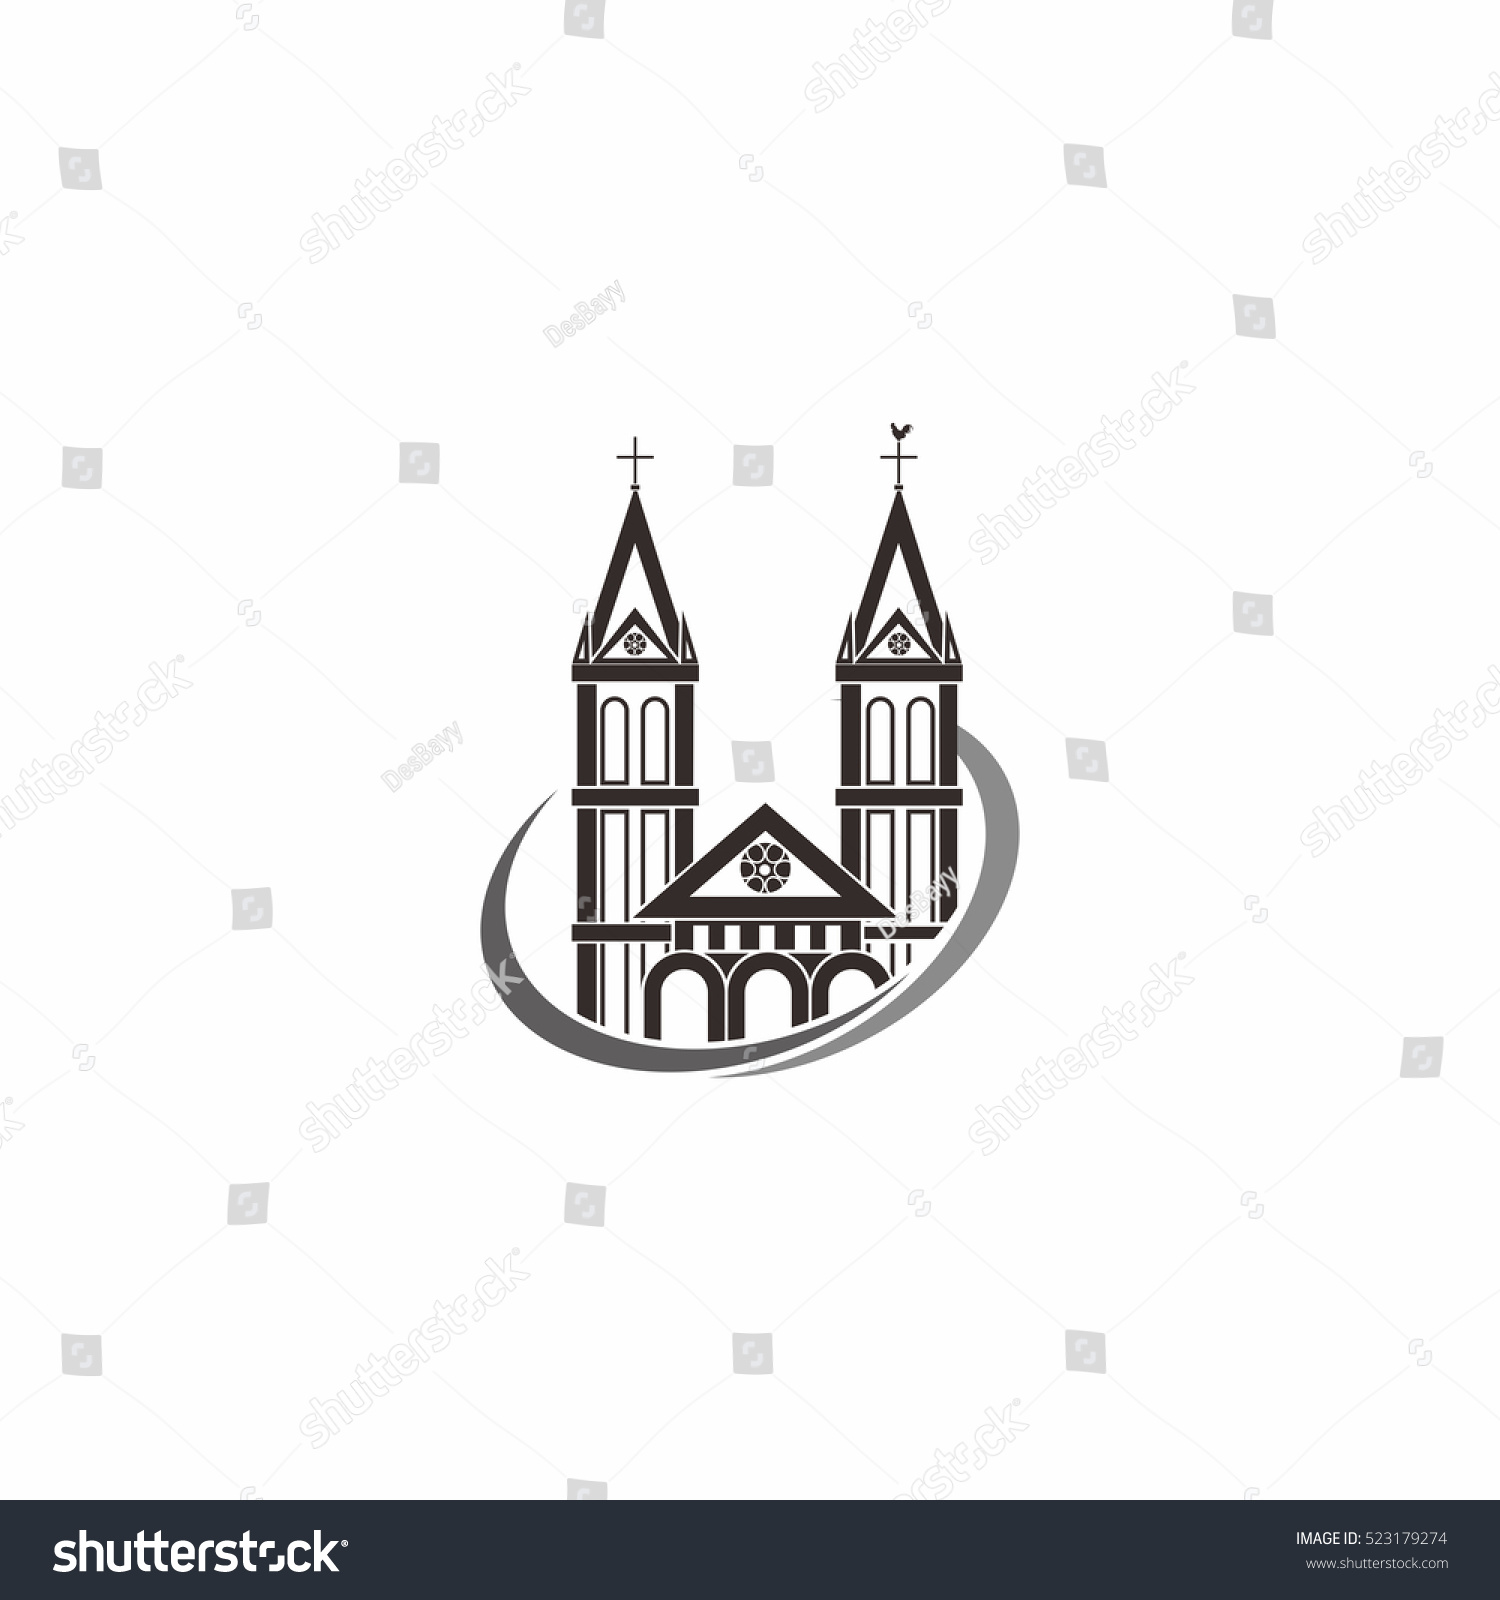 HD wallpapers elevation church coloring page patternehdwallh.cf